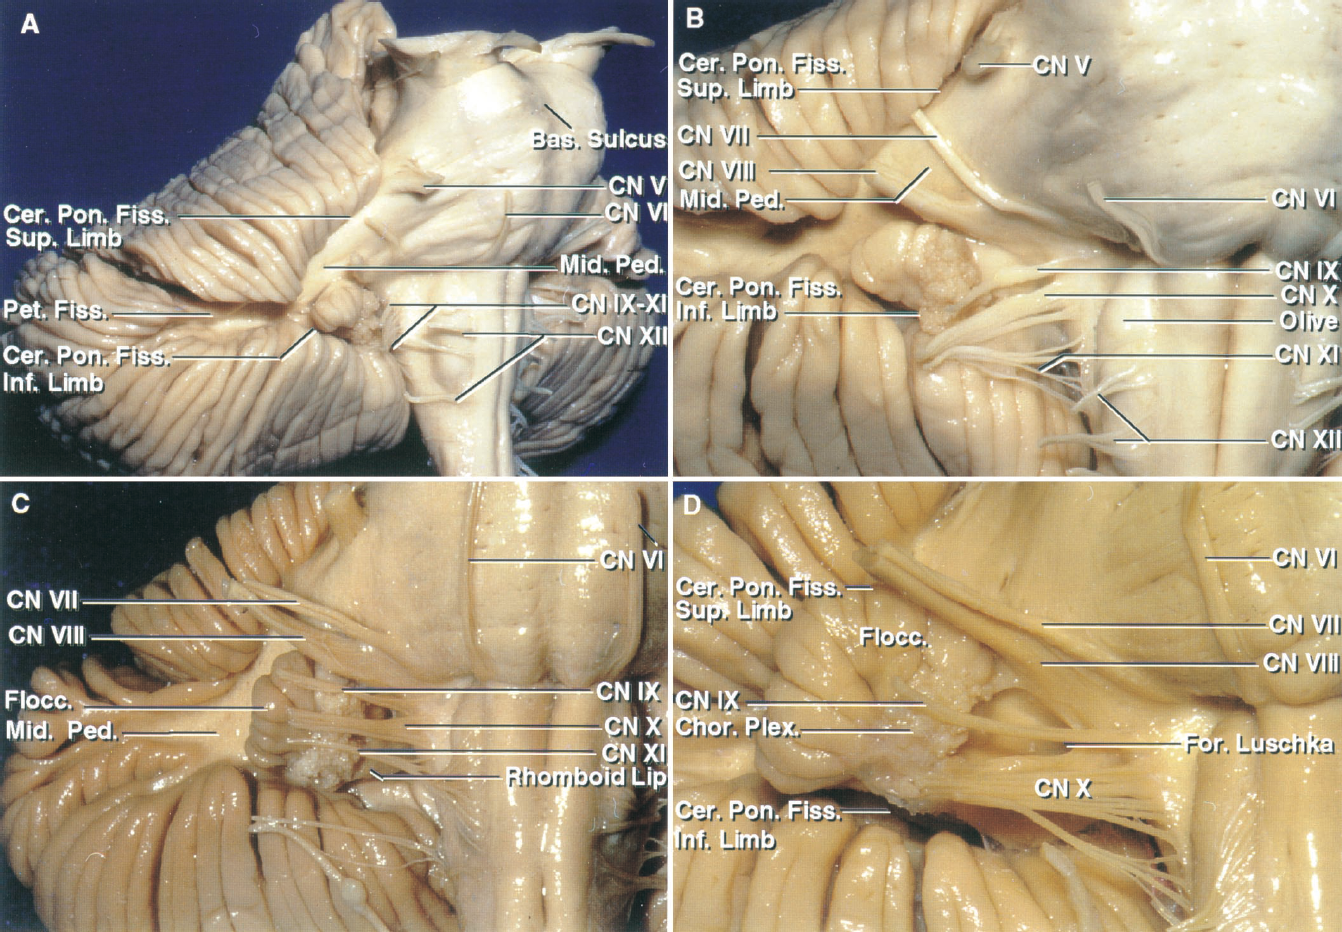 Figure 1.7. Brainstem, petrosal surface, and cerebellopontine fissure. A, oblique view. The petrosal surfaces of the cerebellum face forward toward the petrous bone and is the surface that is retracted to expose the cerebellopontine angle. The cerebellopontine fissure, which might also be referred to as the cerebellopontine angle, is a V-shaped fissure formed where the cerebellum wraps around the pons and middle cerebellar peduncle. The superior and inferior limbs meet laterally at the apex located at the anterior end of the petrosal fissure that divides the petrosal surface into superior and inferior parts. Cranial nerves V through XI arise within the margins of the cerebellopontine fissure. The flocculus and choroid plexus extend laterally from the foramen of Magendie above the lower limb of the fissure. The basilar sulcus is a shallow longitudinal groove on the anterior surface of the pons, which accommodates the basilar artery. B, enlarged view. The petrosal fissure extends laterally from the apex of the cerebellopontine fissure. The abducens nerve arises in the medial part of the pontomedullary sulcus rostral to the medullary pyramids. The facial and vestibulocochlear nerves arise just rostral to the foramen of Luschka near the flocculus at the lateral end of the pontomedullary sulcus. The hypoglossal nerves arise anterior to and the glossopharyngeal, vagus, and accessory nerves arise posterior to the olives. Cho- roid plexus protrudes from the foramen of Luschka behind the glossopharyngeal and vagus nerves. C, enlarged view of another brain- stem. The facial and vestibulocochlear nerves join the brainstem 2 or 3 mm rostral to the glossopharyngeal nerve on a line drawn dorsal to the olive along the origin of the rootlets of the glossopharyngeal, vagus, and accessory rootlets. The rhomboid lip, a thin neural membrane in the ventral margin of the lateral recess, extends laterally behind the glossopharyngeal, vagus, and accessory nerves with the choroid plexus. D,